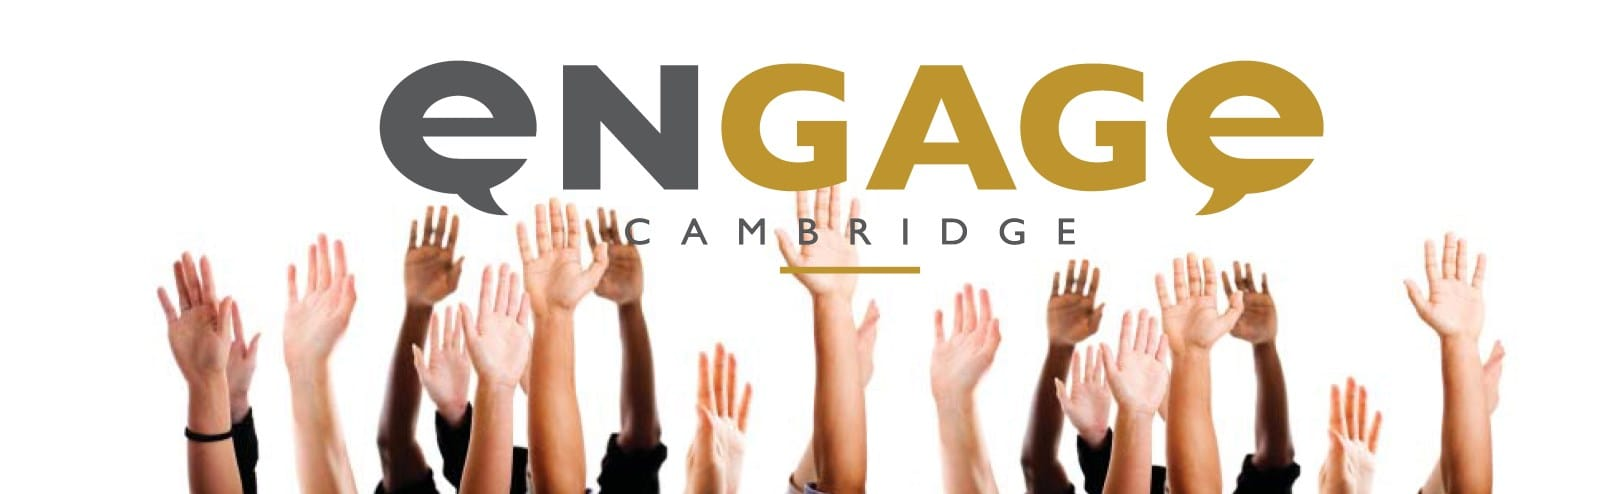 Engage Cambridge with hands in the air